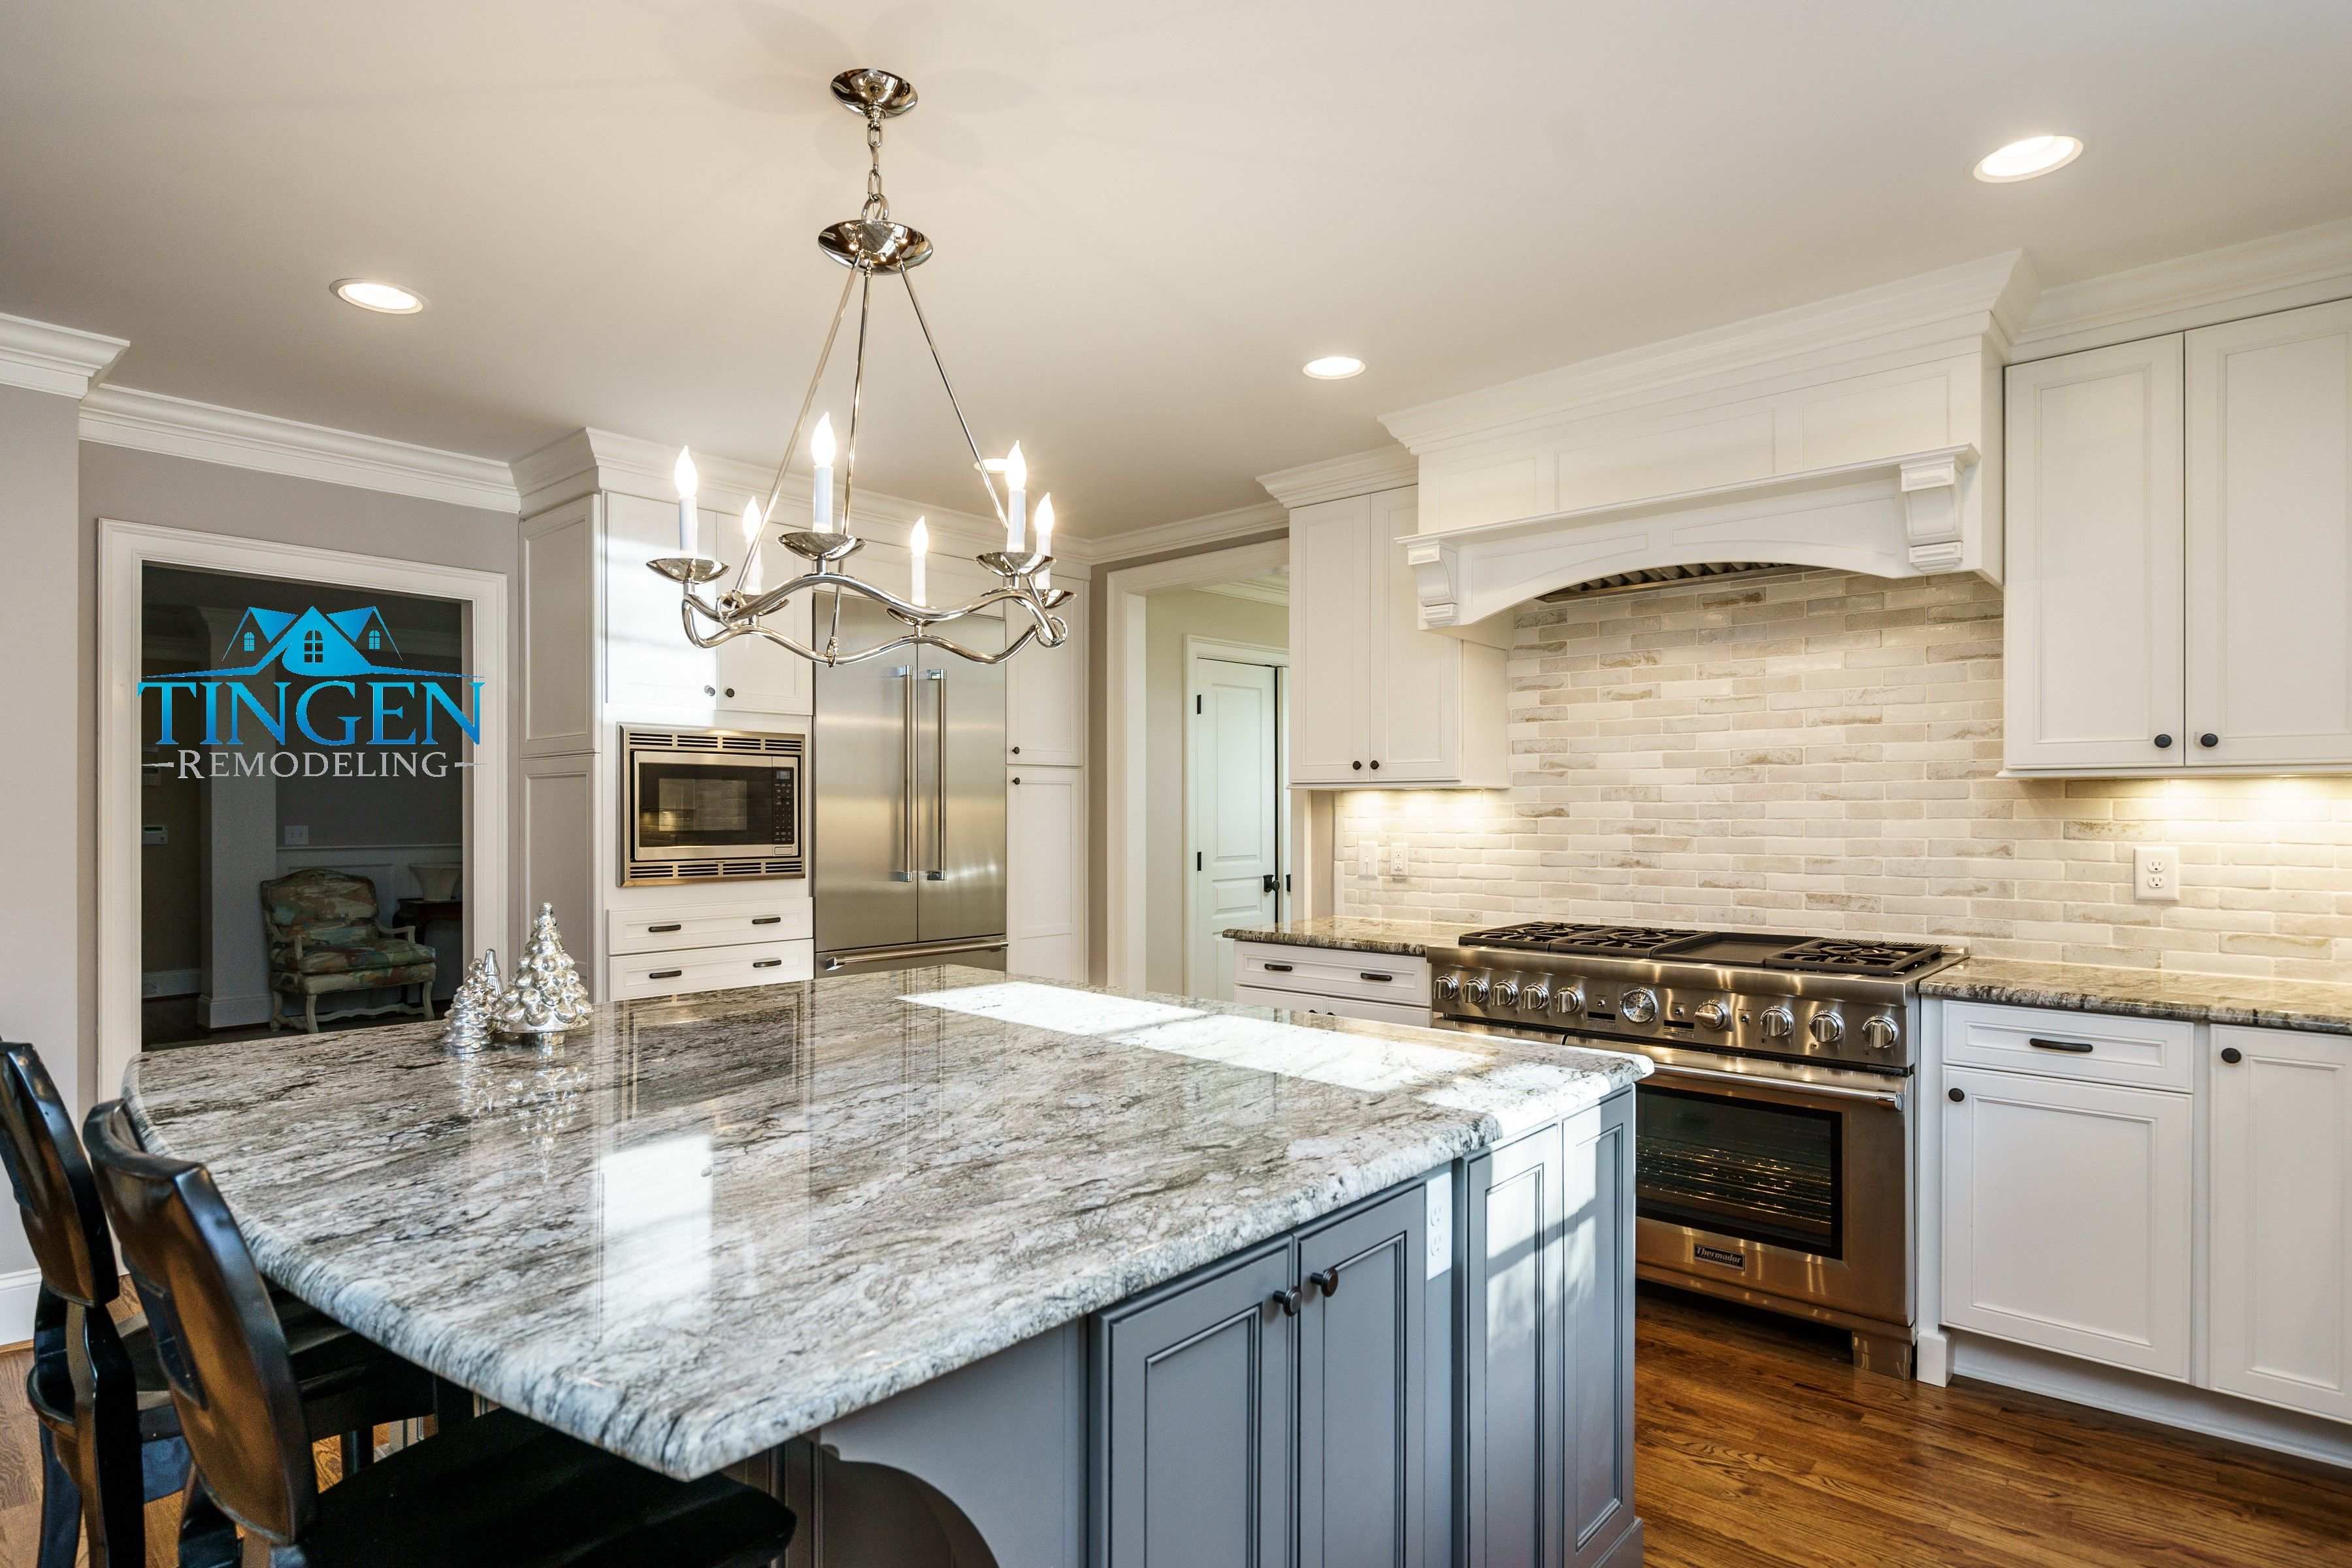 Tingen Remodeling Raleigh Nc Thermador Kitchen Cabinets Brizo Rohl Sink Faucet Re Custom Kitchen Remodel Kitchen Remodel Home Remodeling Contractors